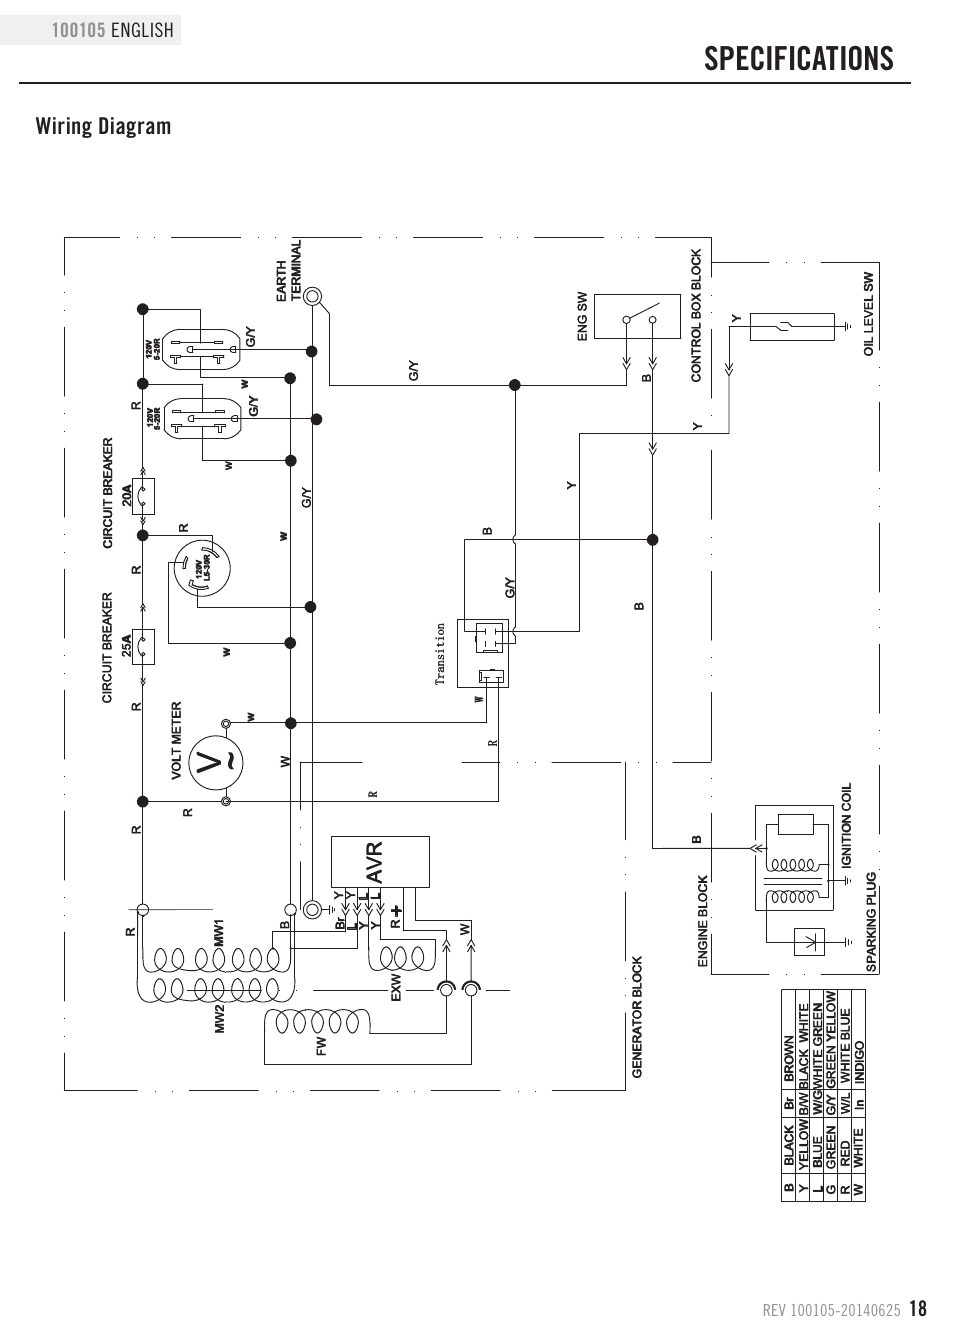 Diagram 44kprb Champion Wiring Diagram Full Version Hd Quality Wiring Diagram Swireex1 Fimenor Fr